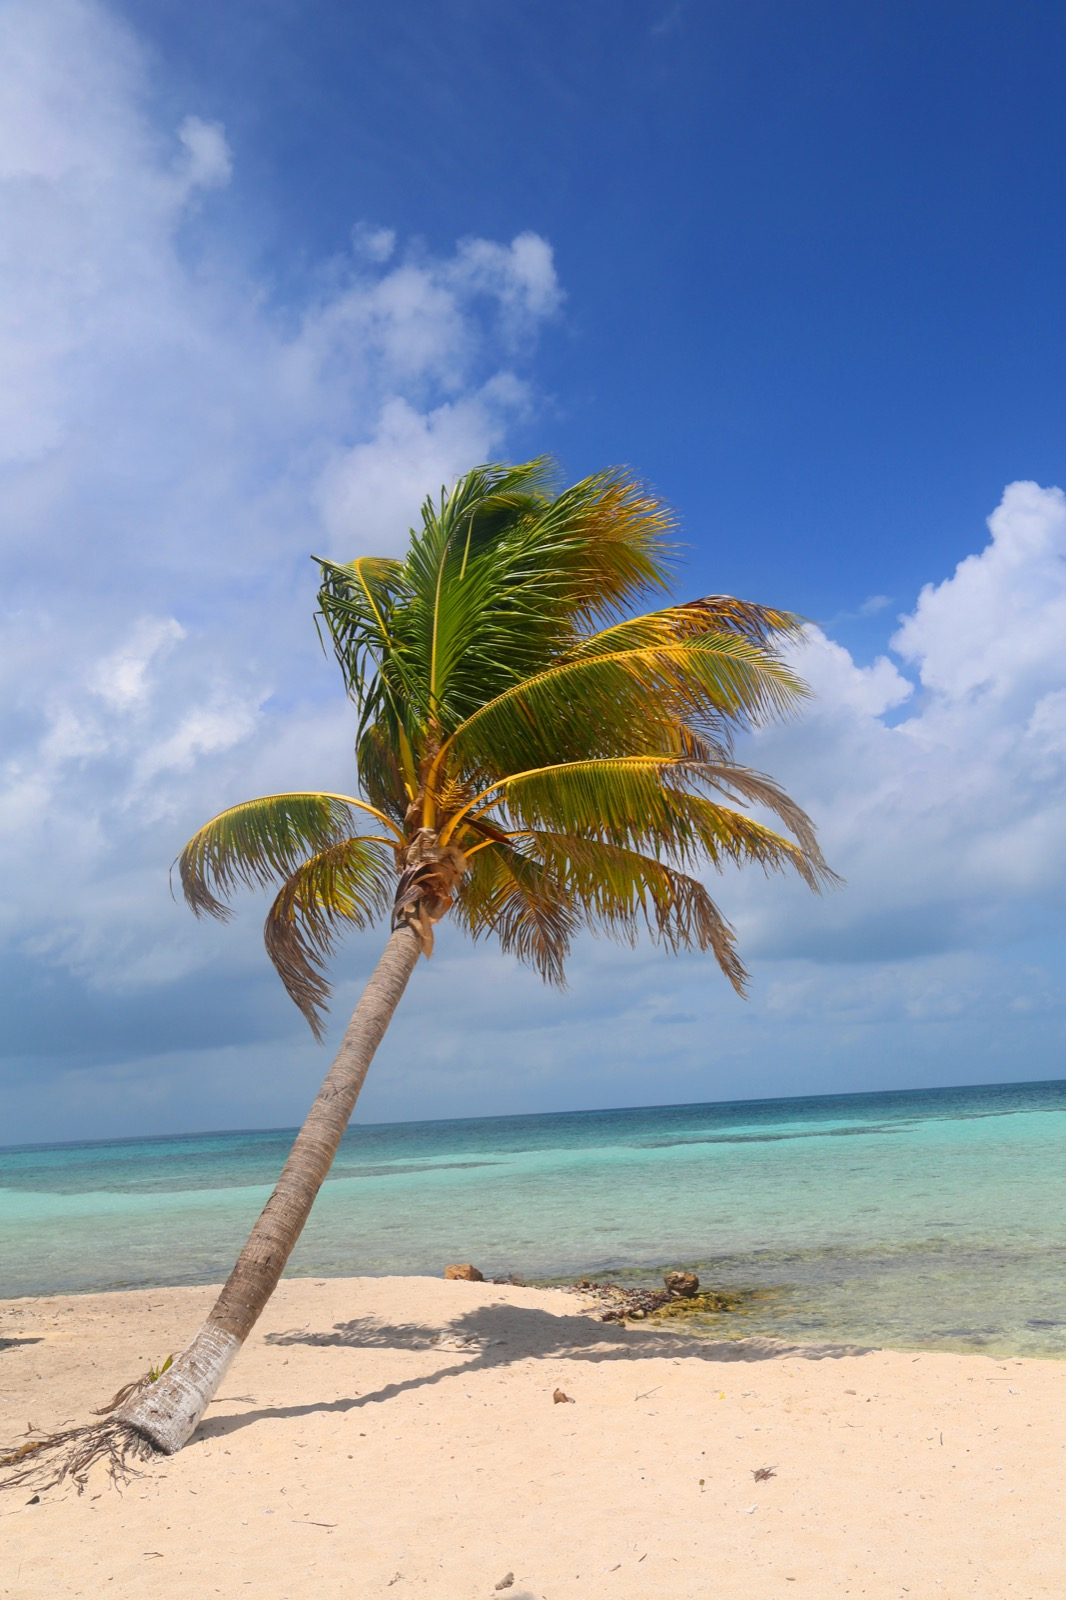 Belize City, Belize Attractions - Lonely Planet